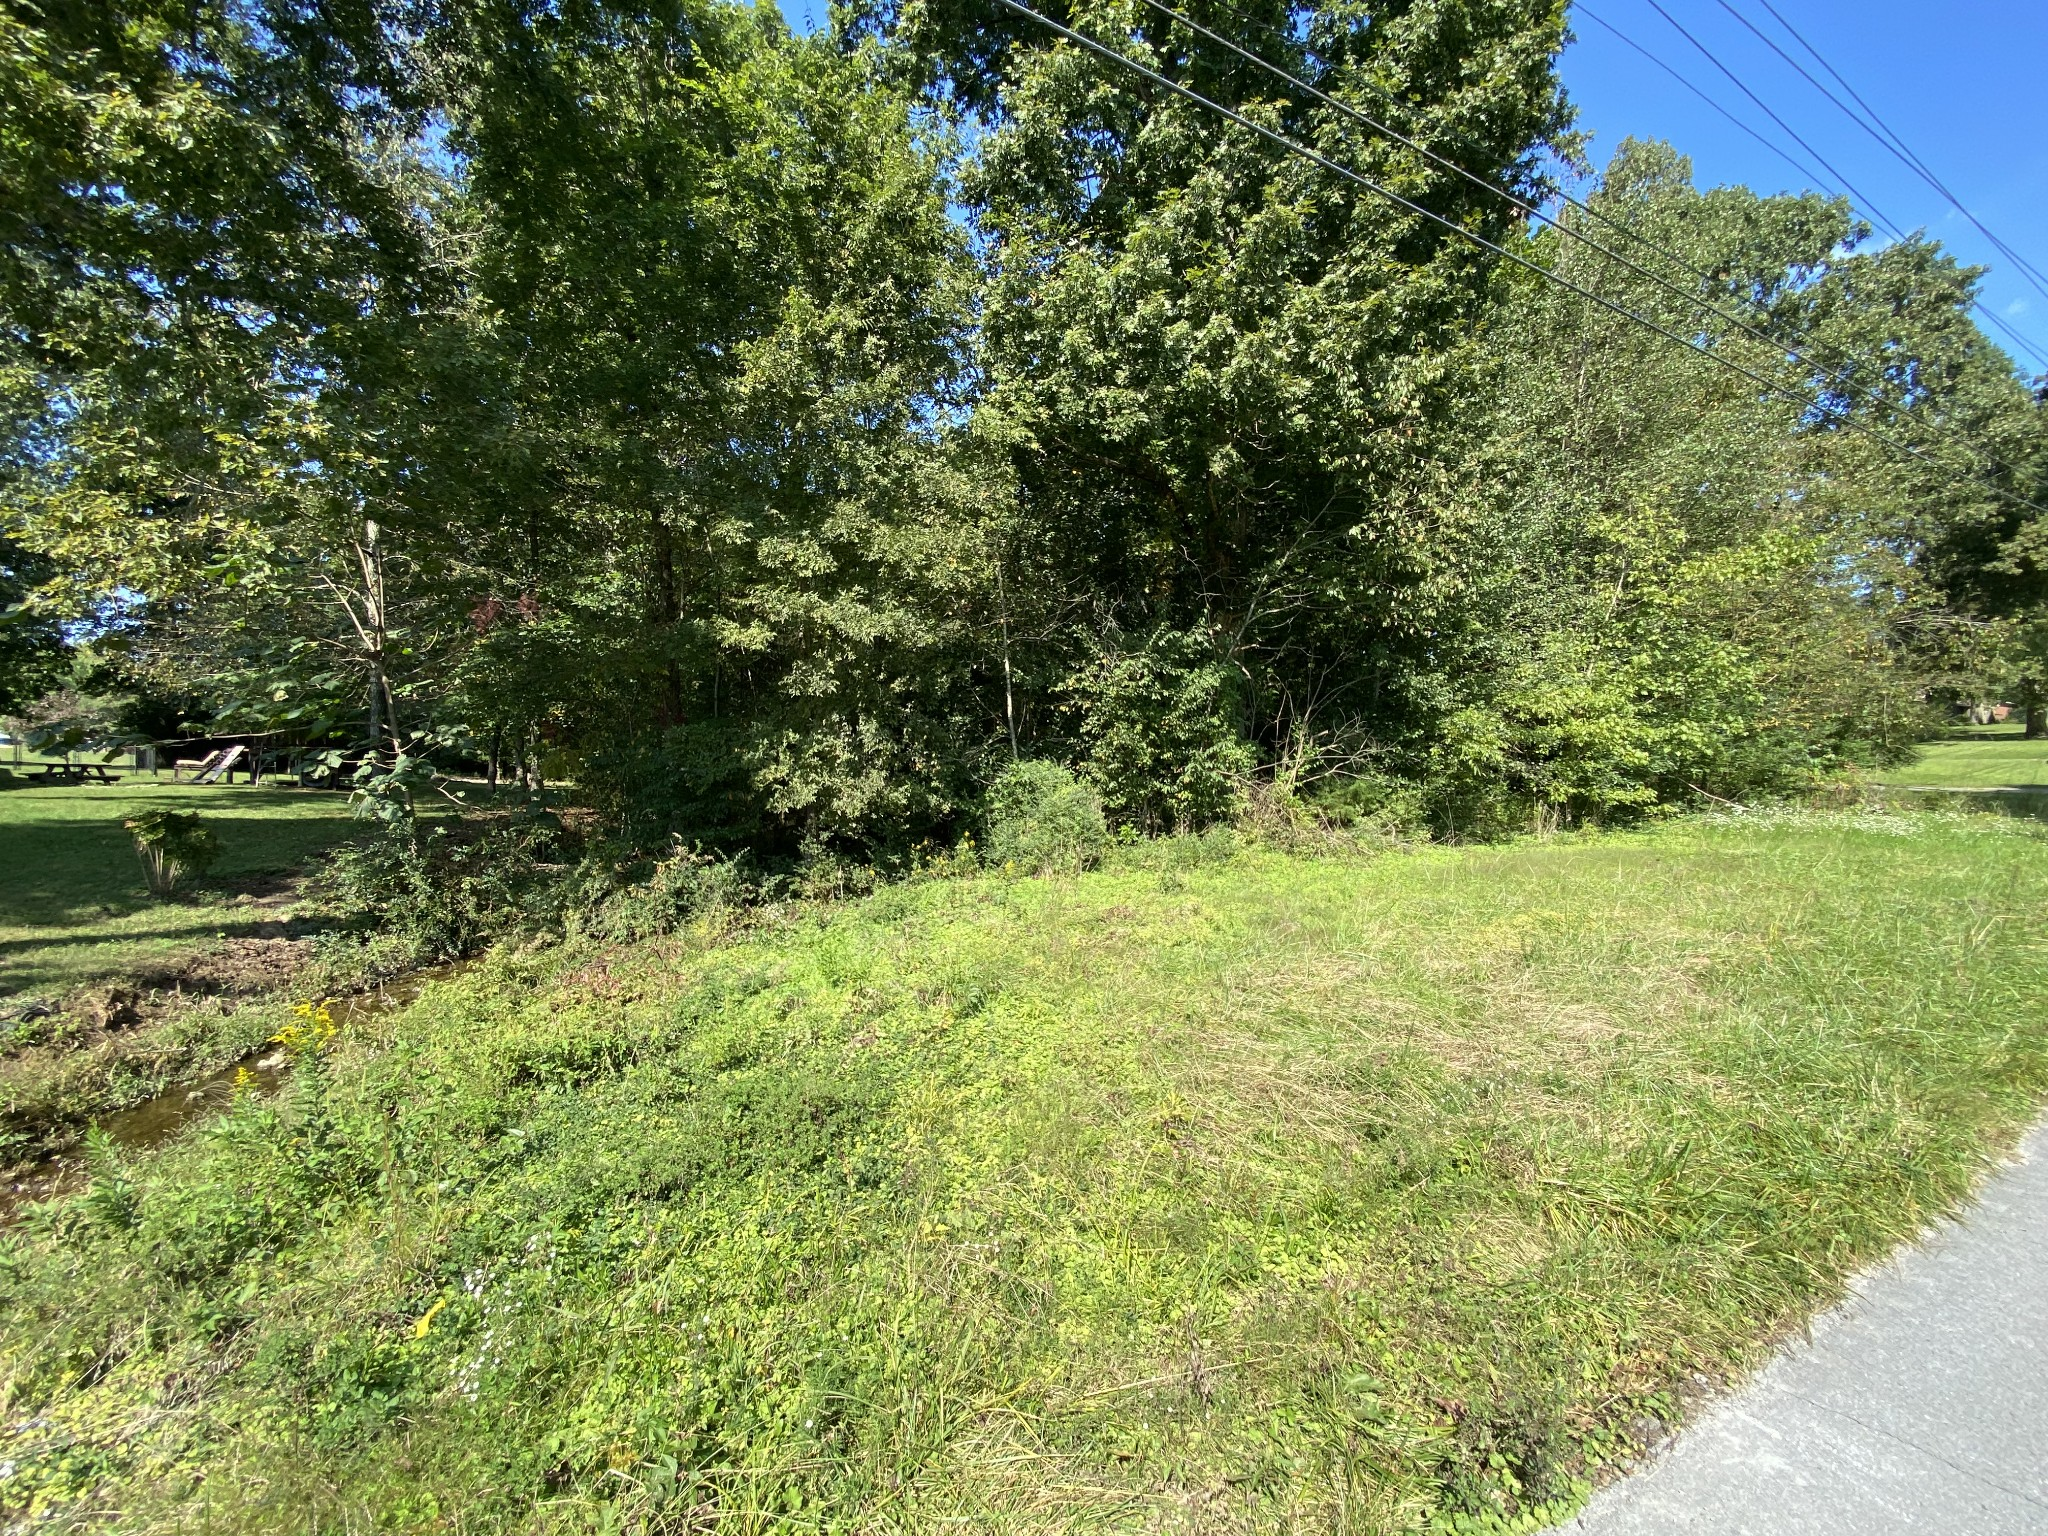 Beautiful building lot with mature trees in Lake Tullahoma Estates. Creek runs along the side of the property. This lot backs up to the Lakewood golf course. It is convenient to all Tullahoma has to offer and in a well established neighborhood. Water and power available at the road